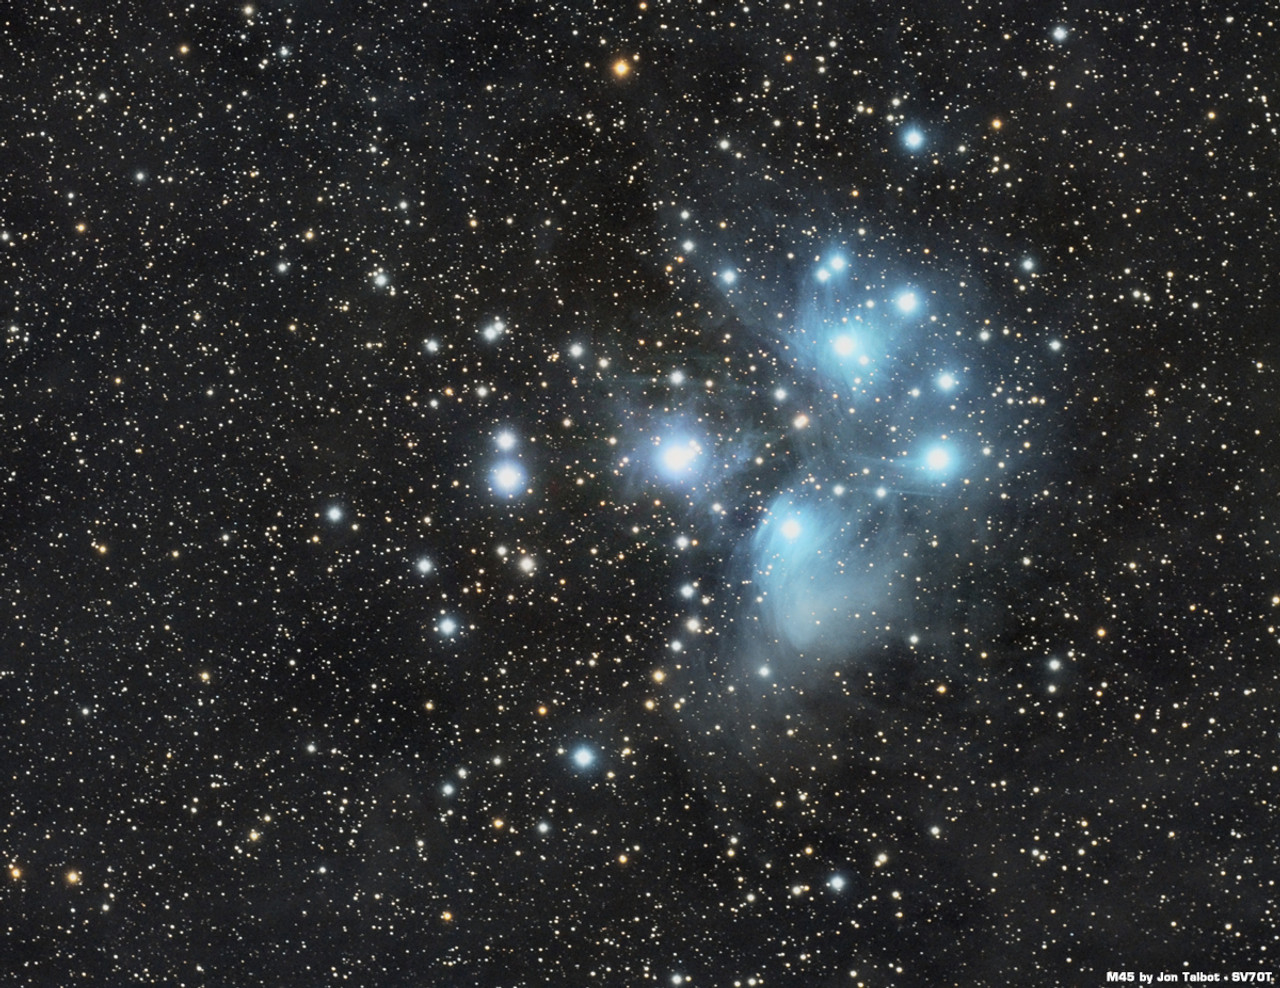 M45 by Jon Talbot with SV70T